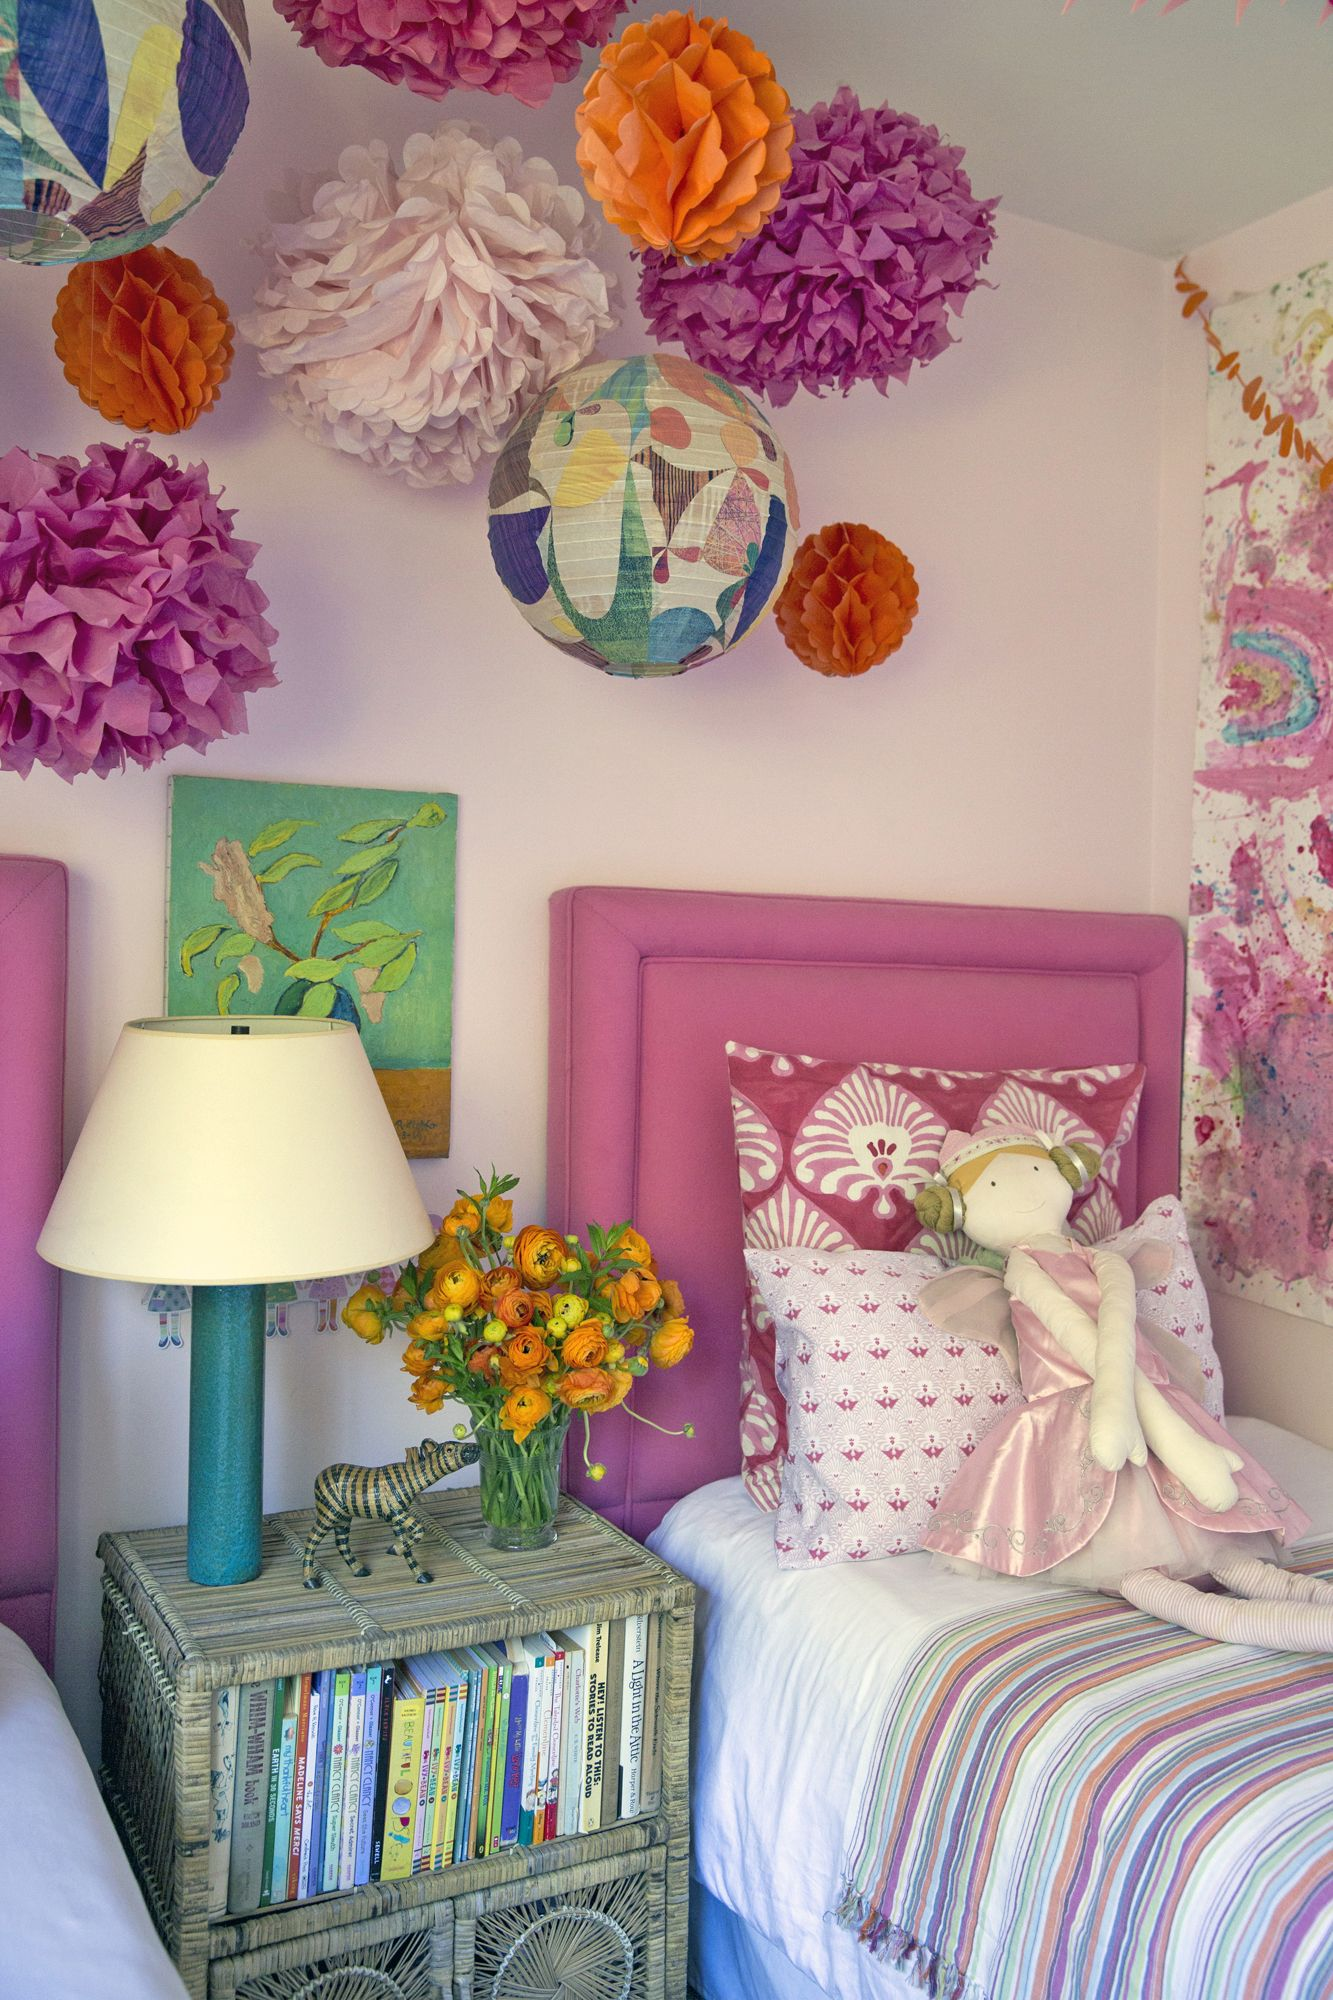 Design Your Room Virtual: Pink Headboard, Decor, Kids Room